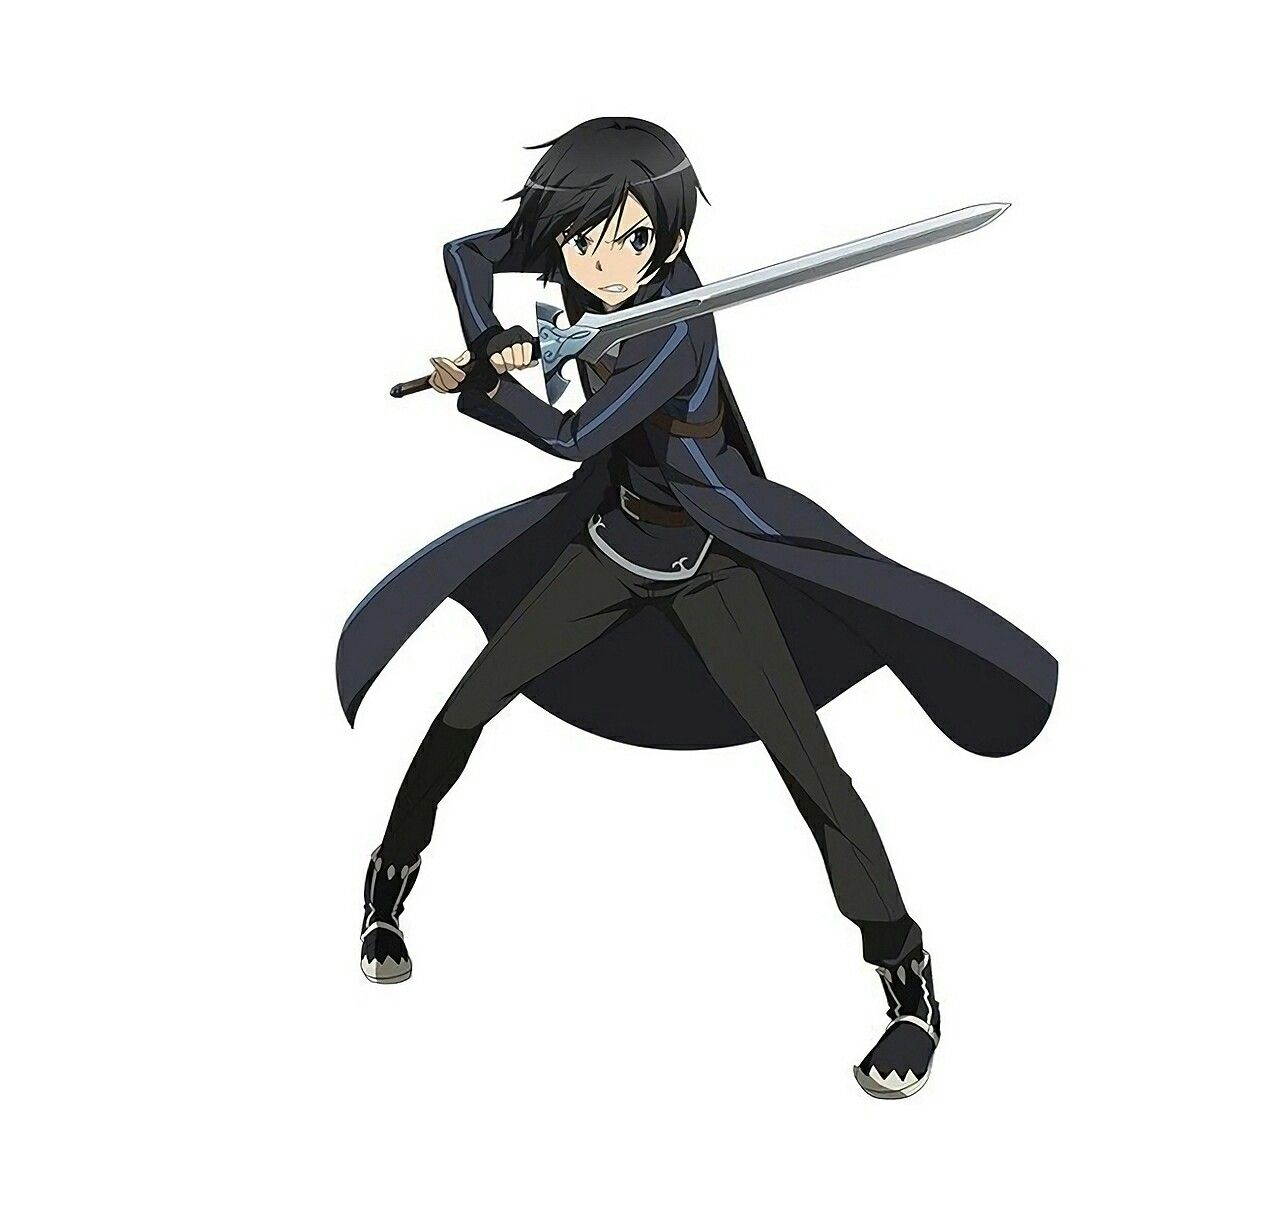 Anime Characters Use Dual Swords : Kirito sword art online pinterest